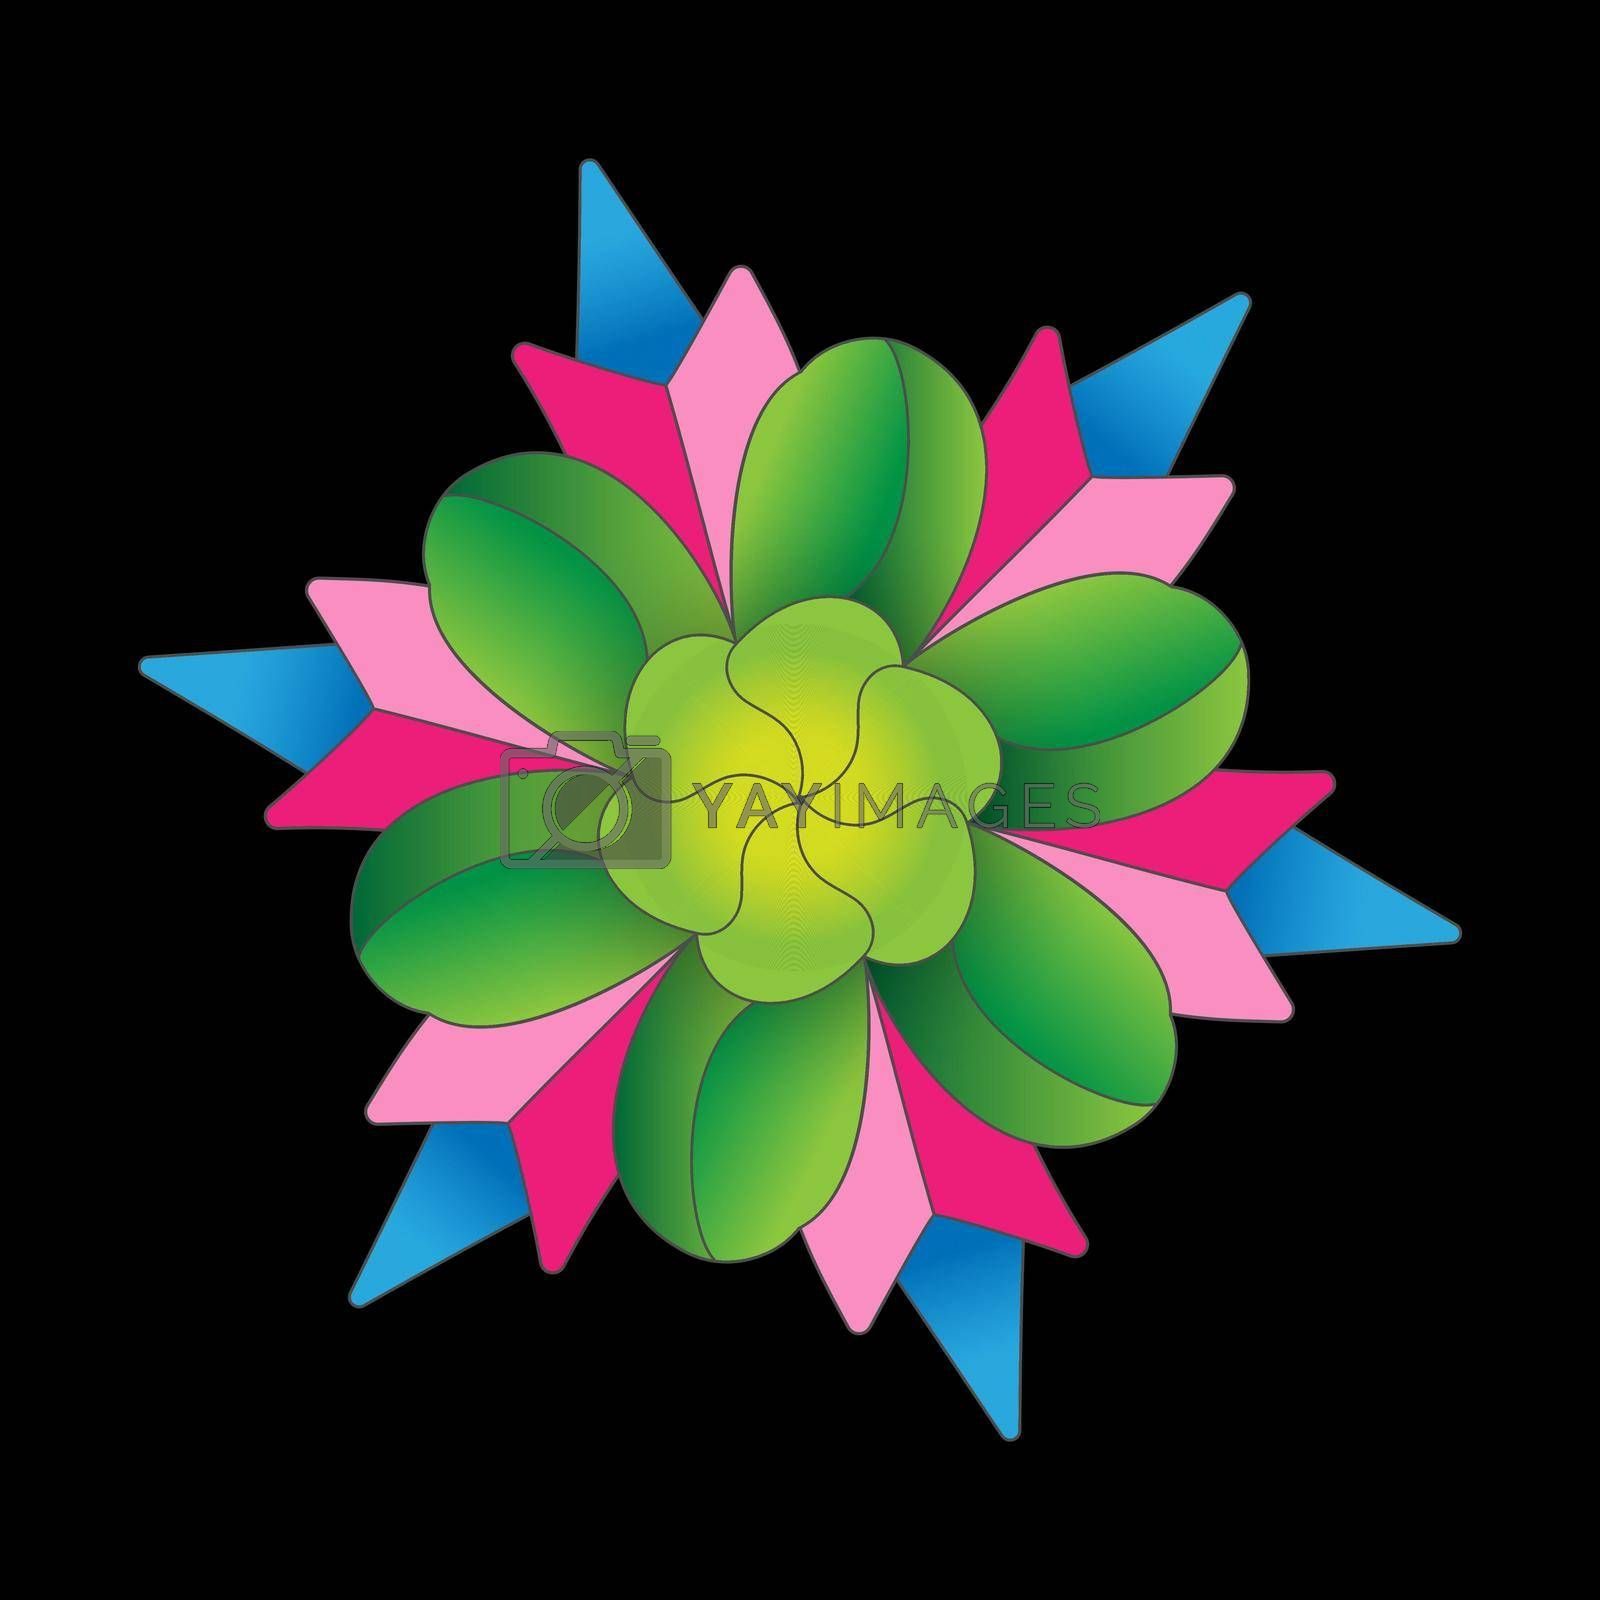 Color flower pattern for scrapbooking, impression, stamp, figure carving and creative design. Flat style.